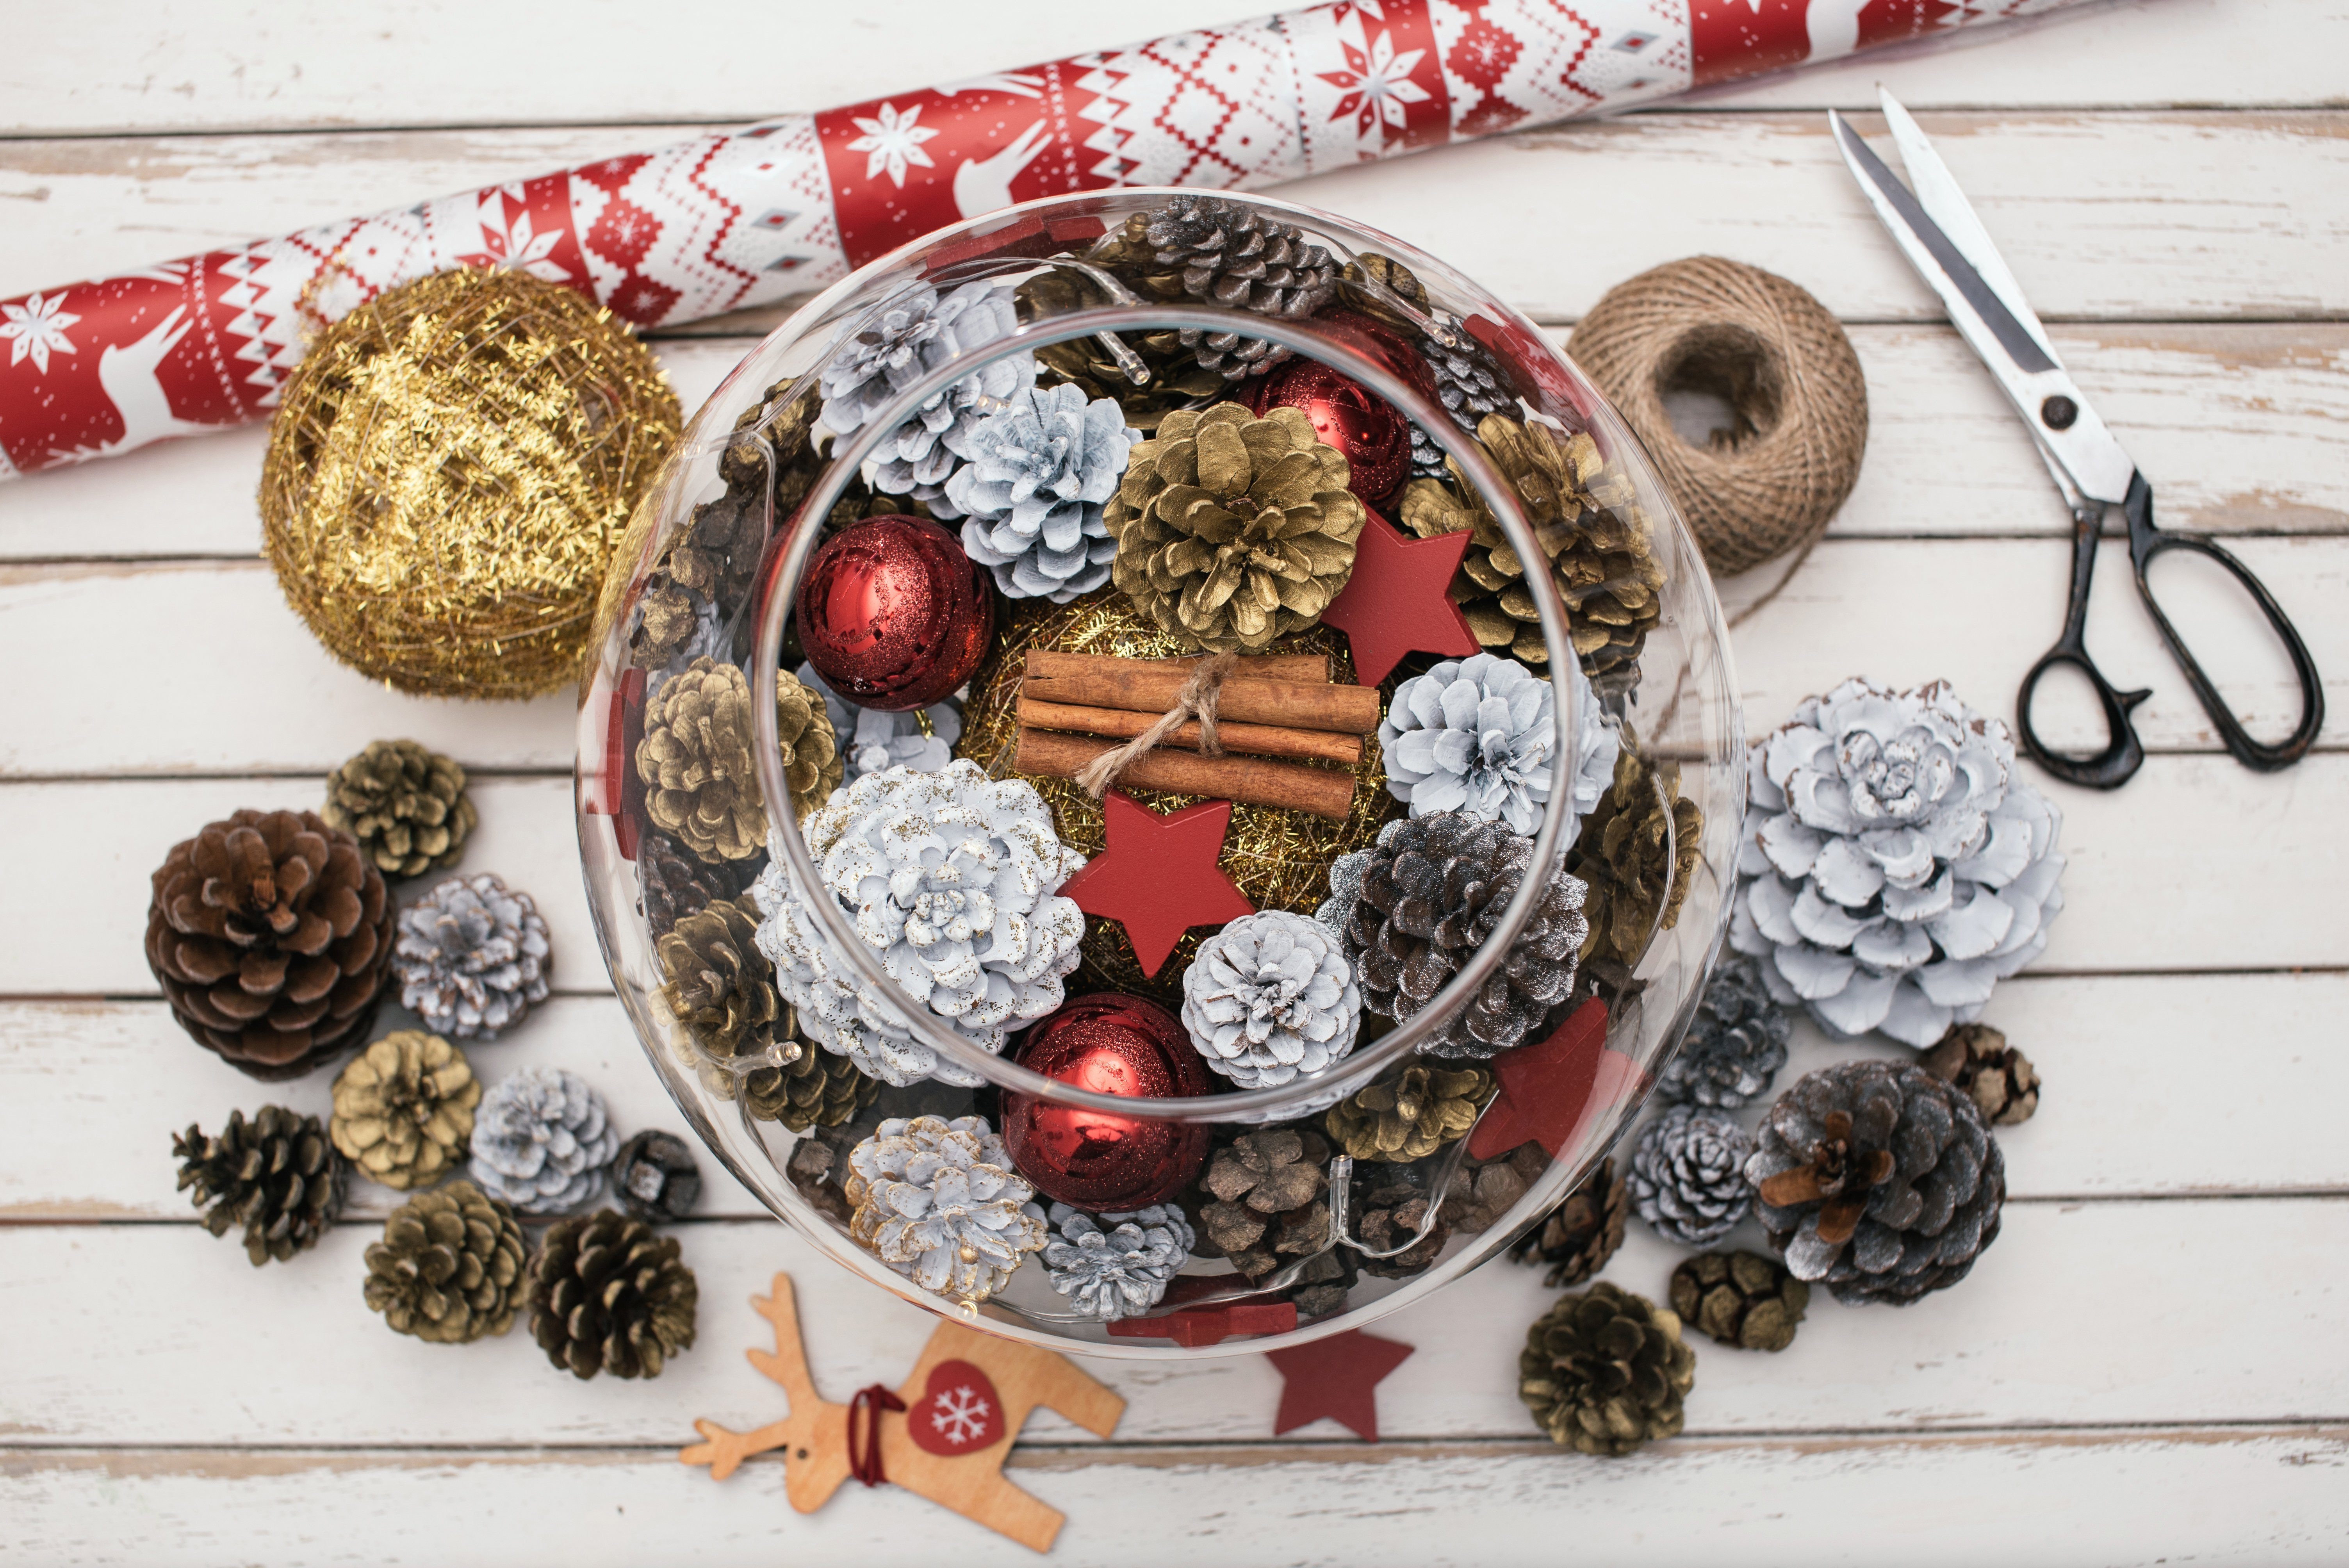 Decorating Christmas table with pine cones